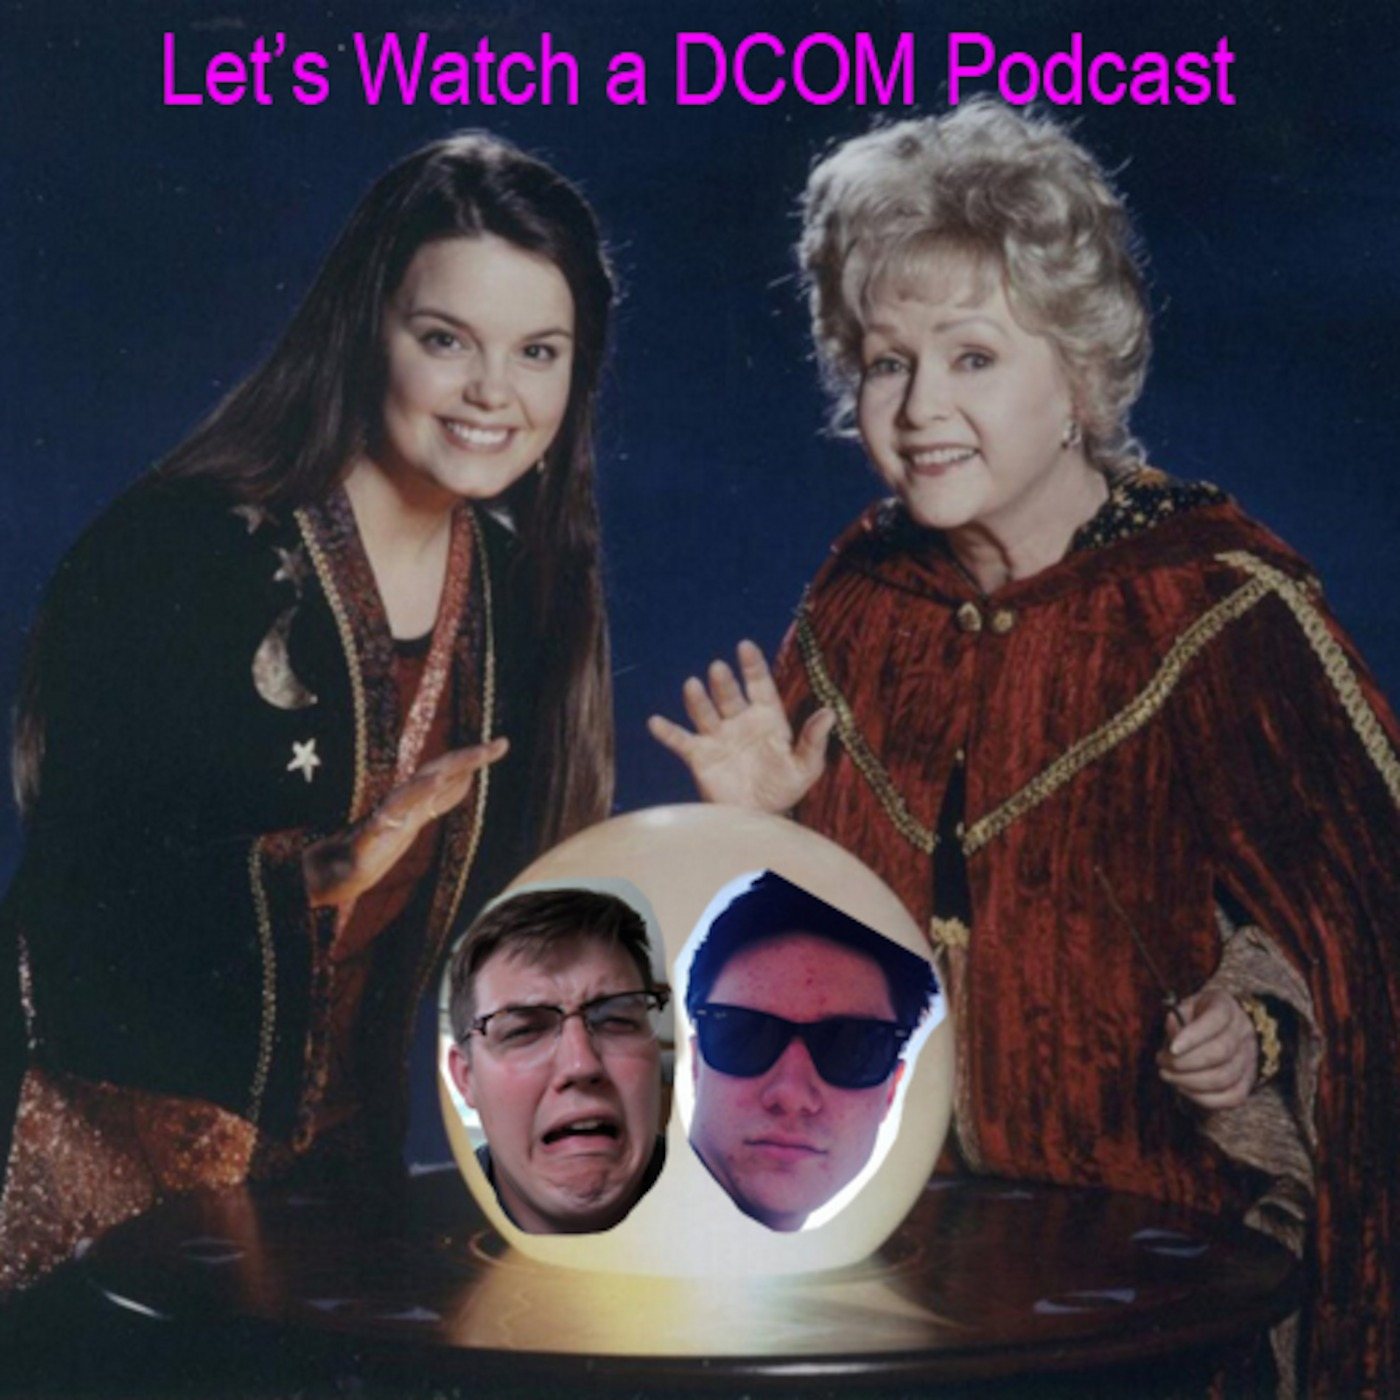 DCOM Podcast's Podcast